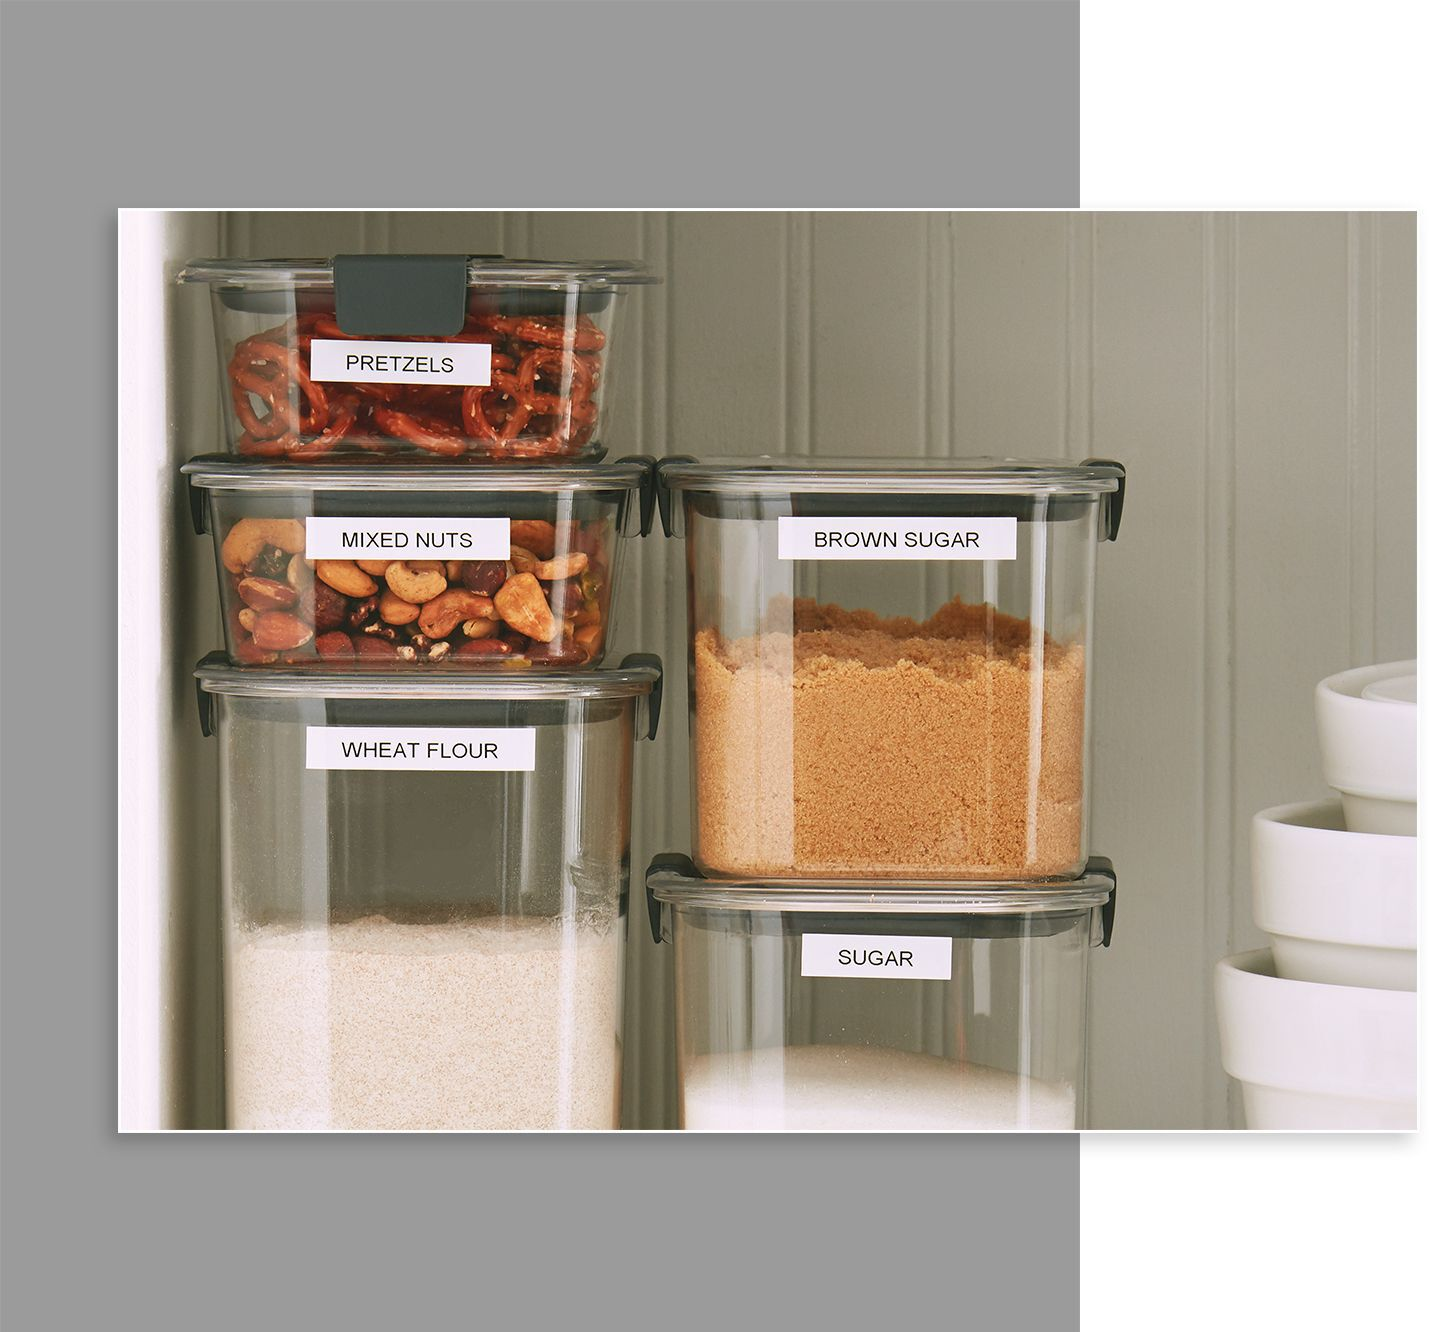 Rubbermaid brilliance pantry food storage containers stacked and labelled